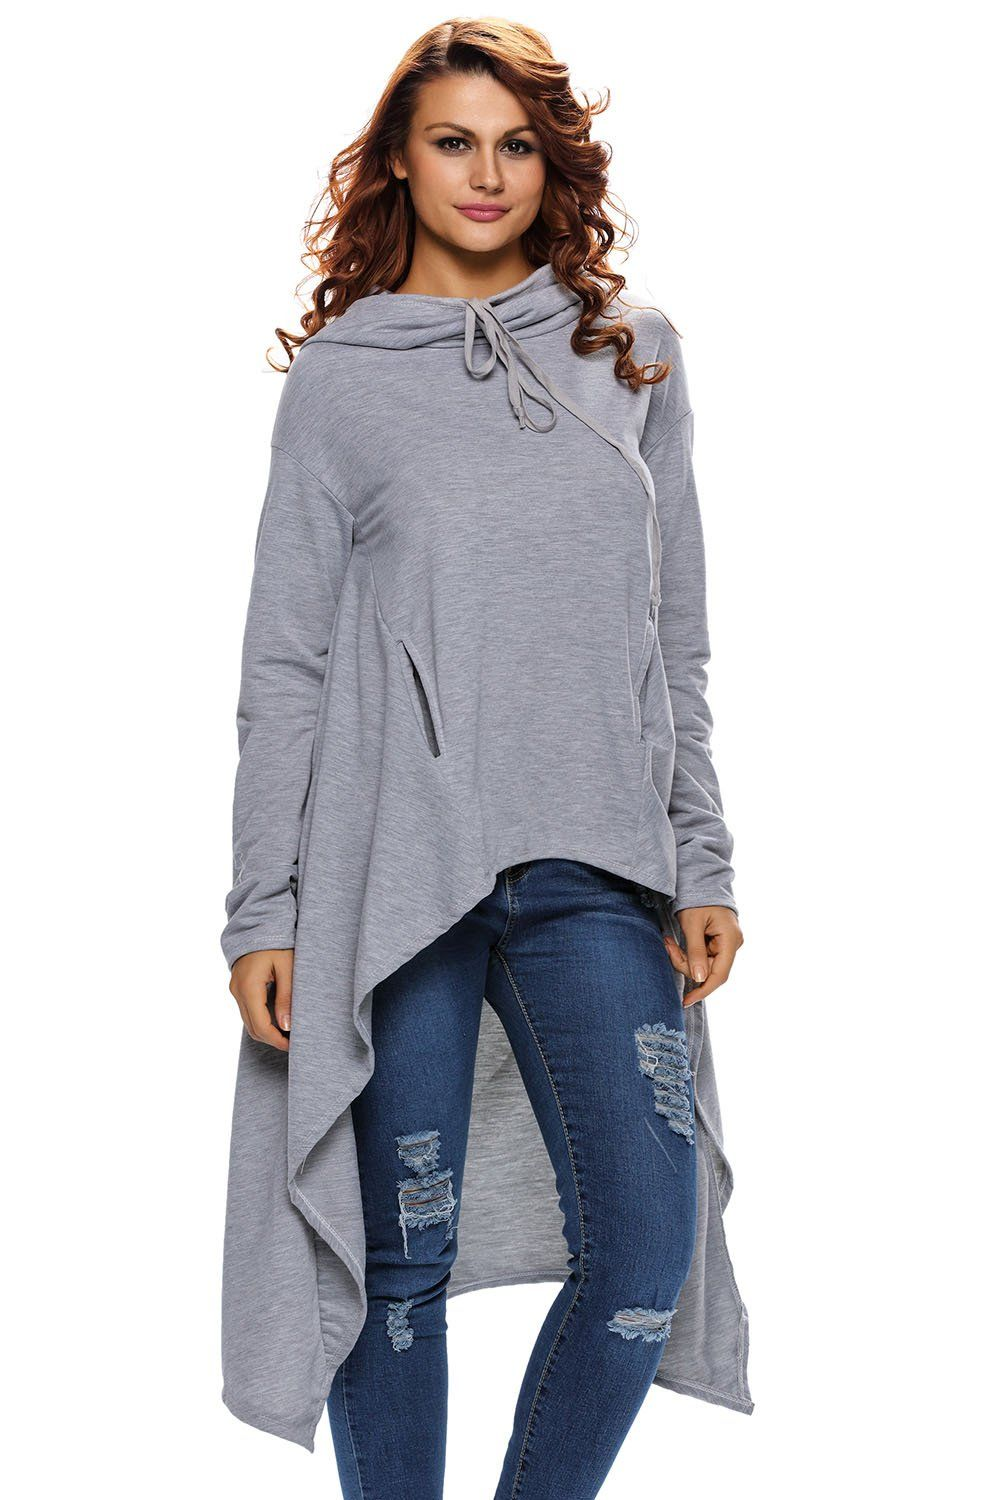 Oversize Hoodie Ideal Season. Cozy Piece Crafted Soft Fabric Offers